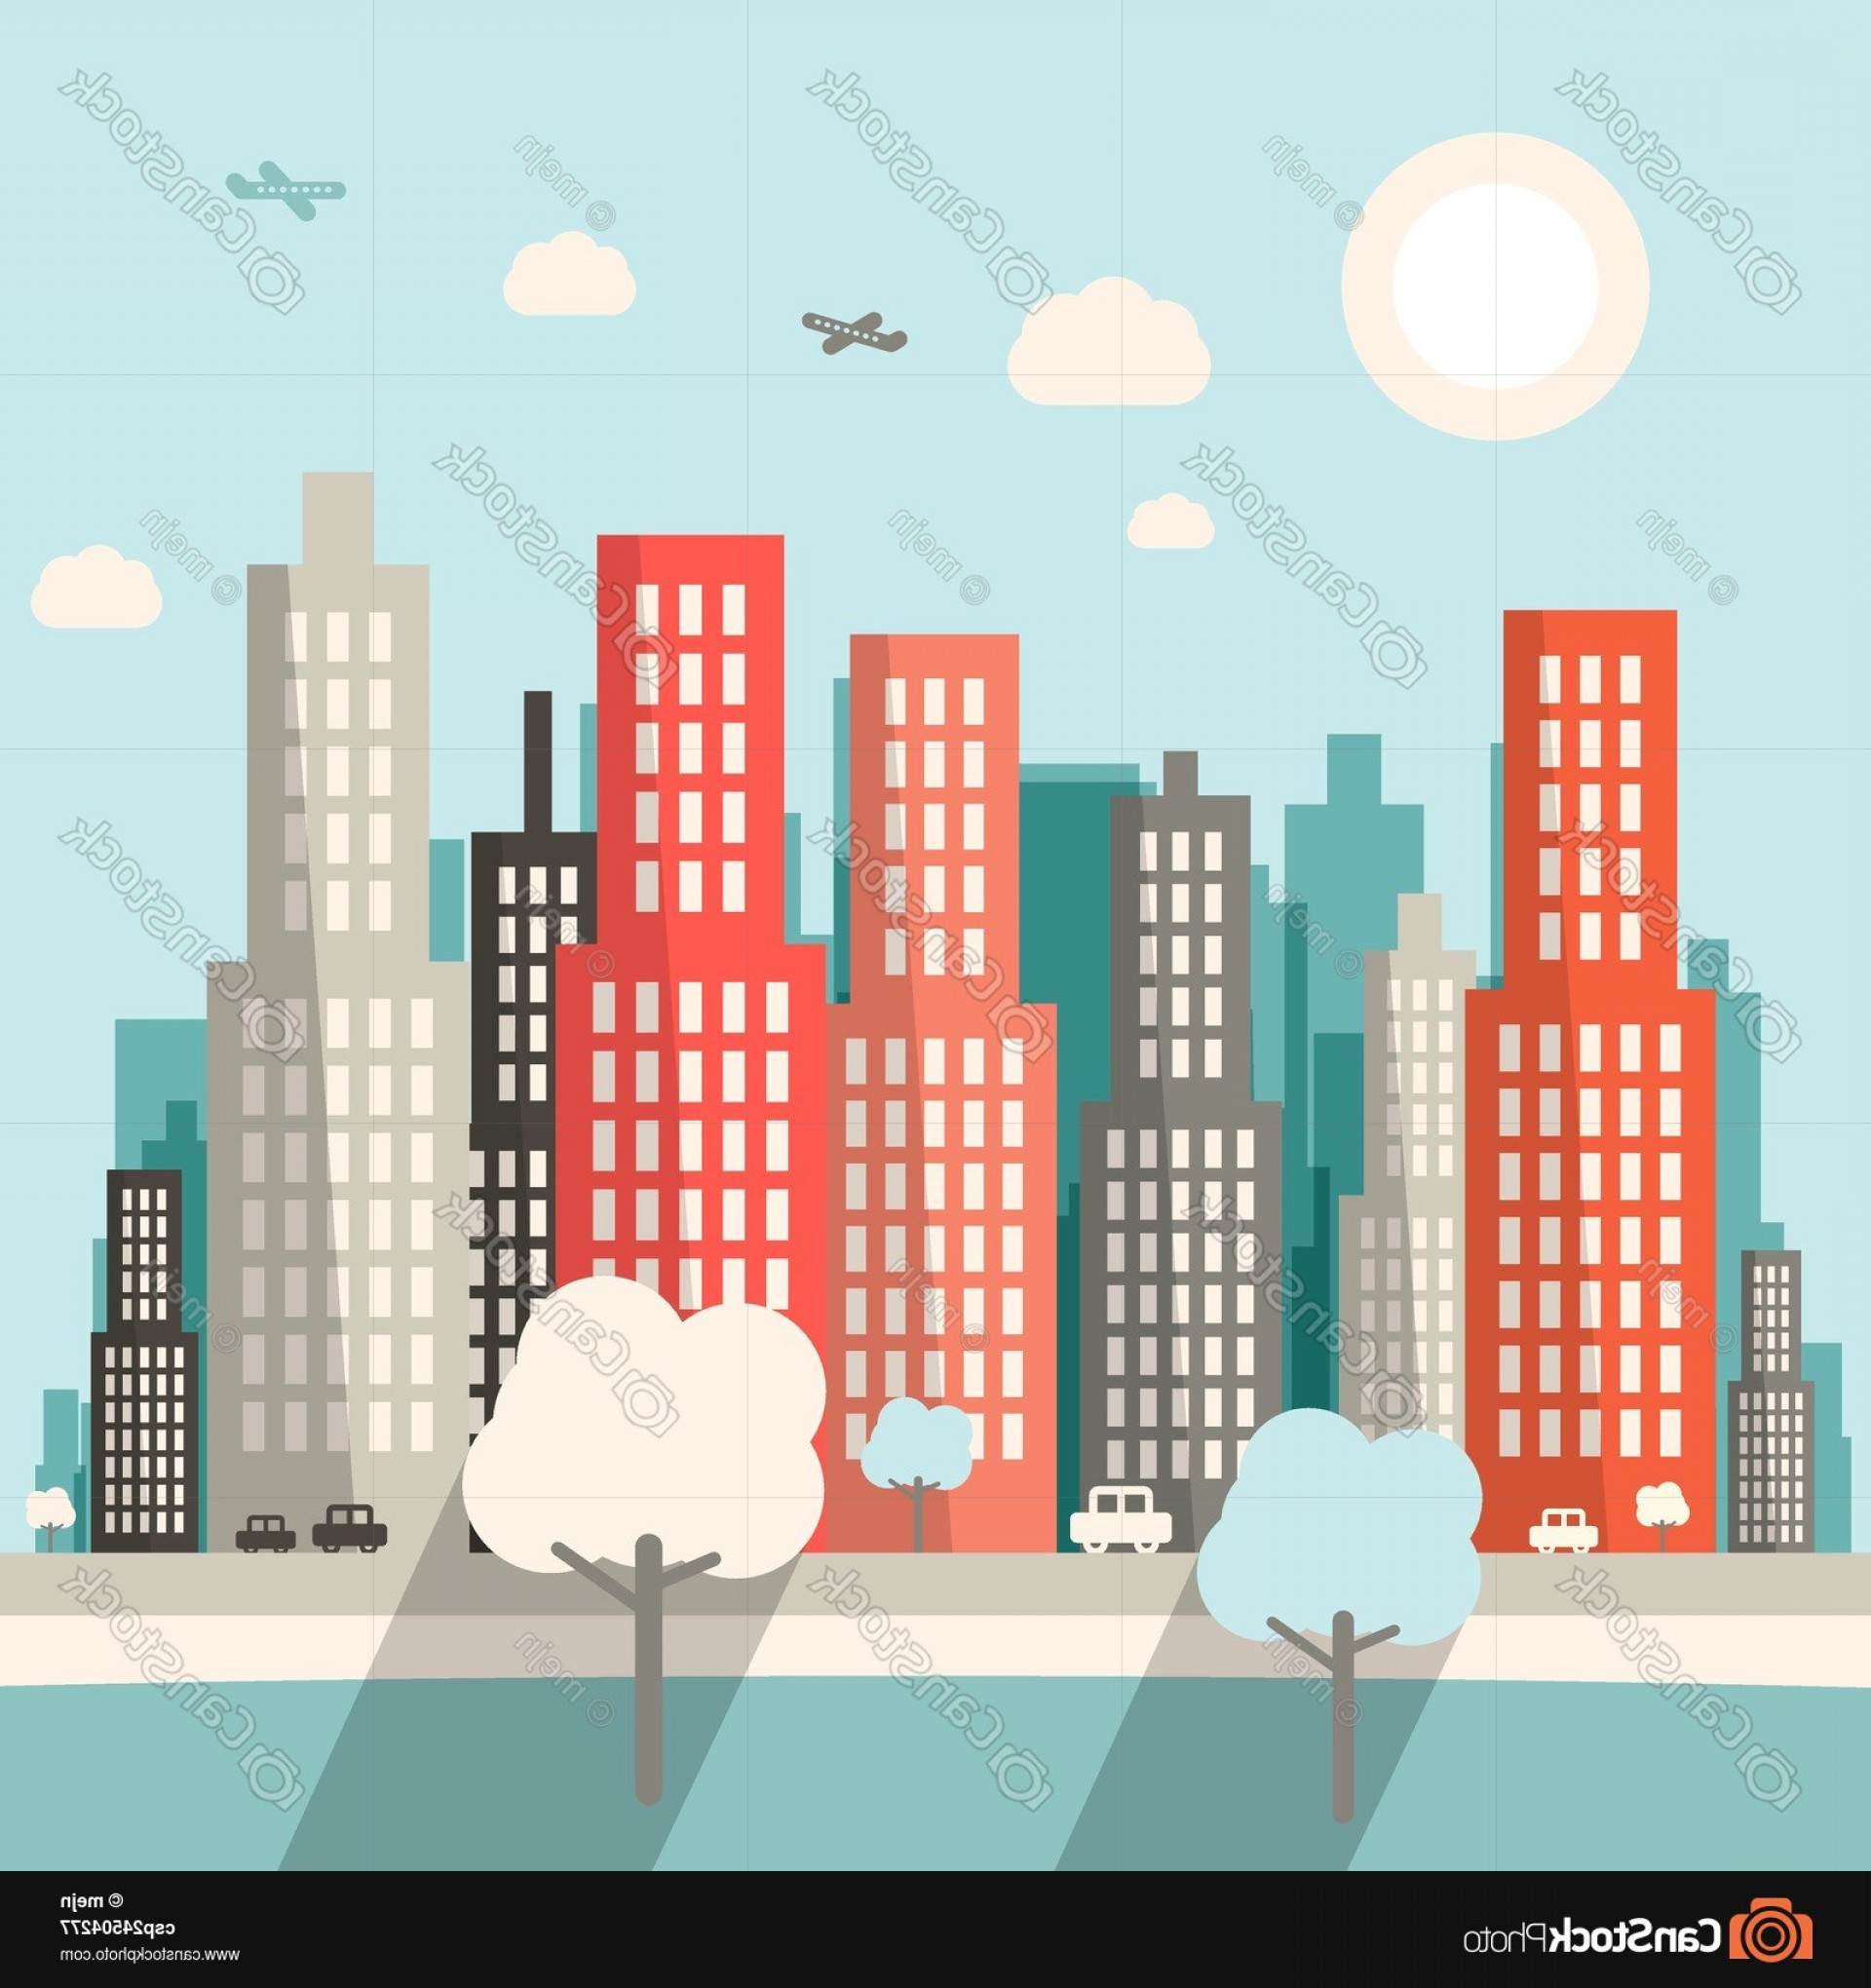 City Vector: Flat Design City Vector Illustration